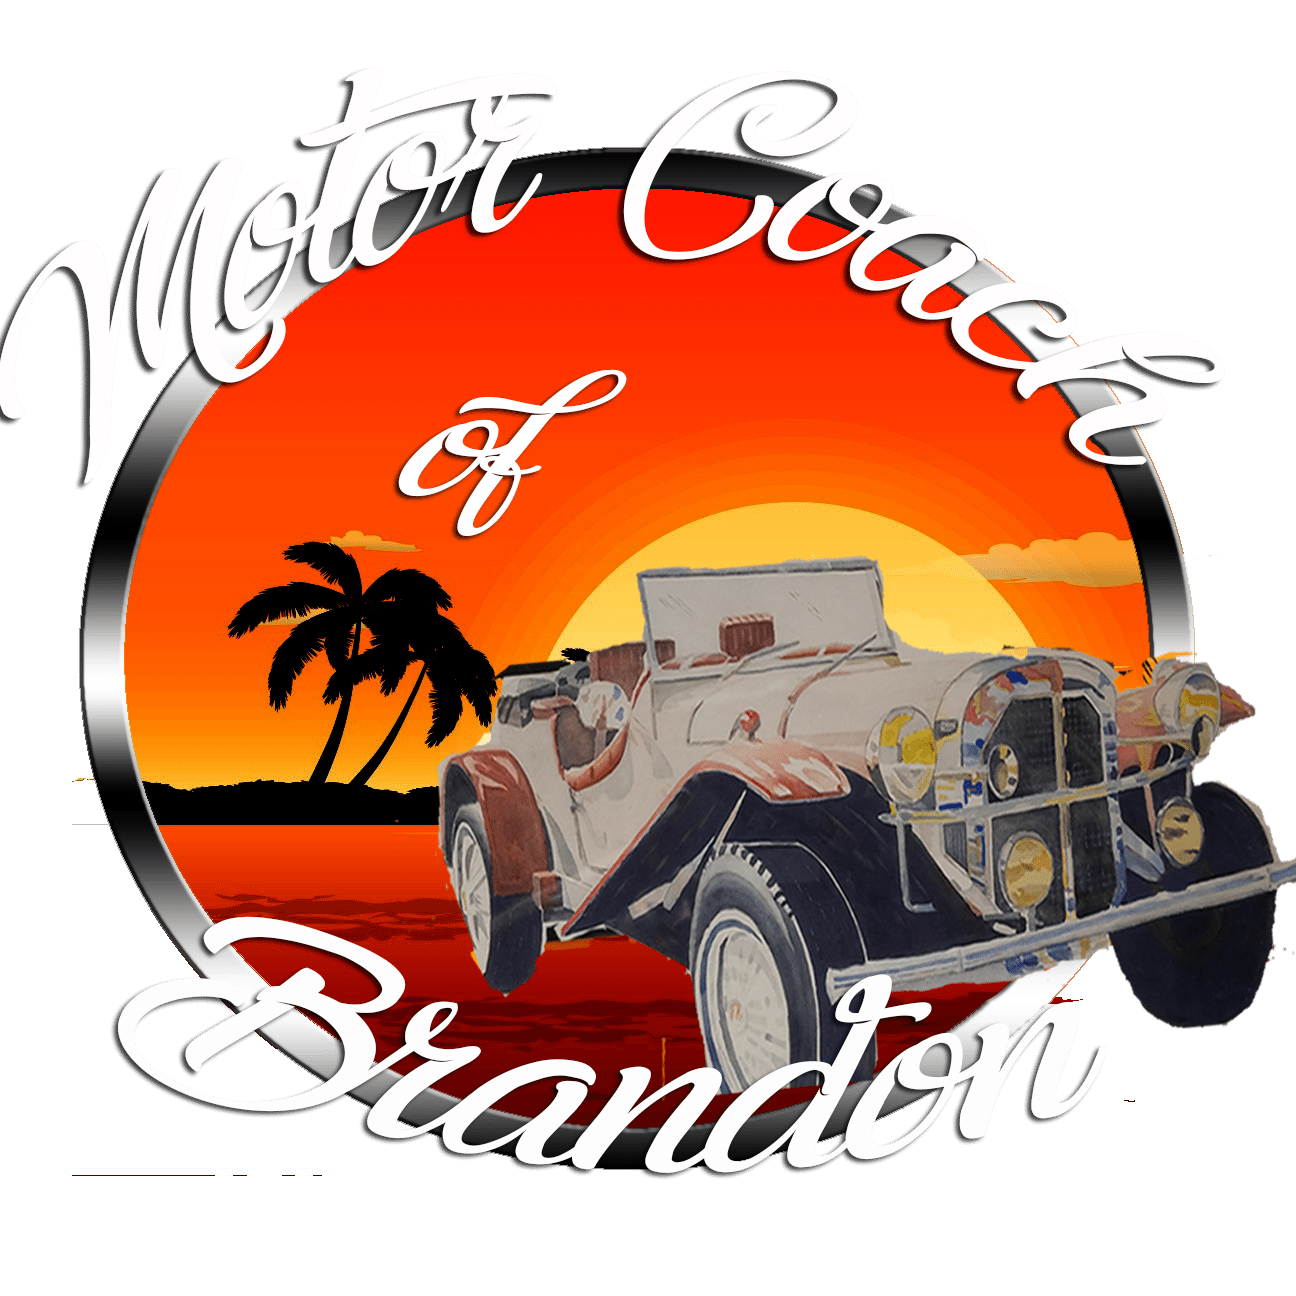 Auto mechanics repair brandon florida